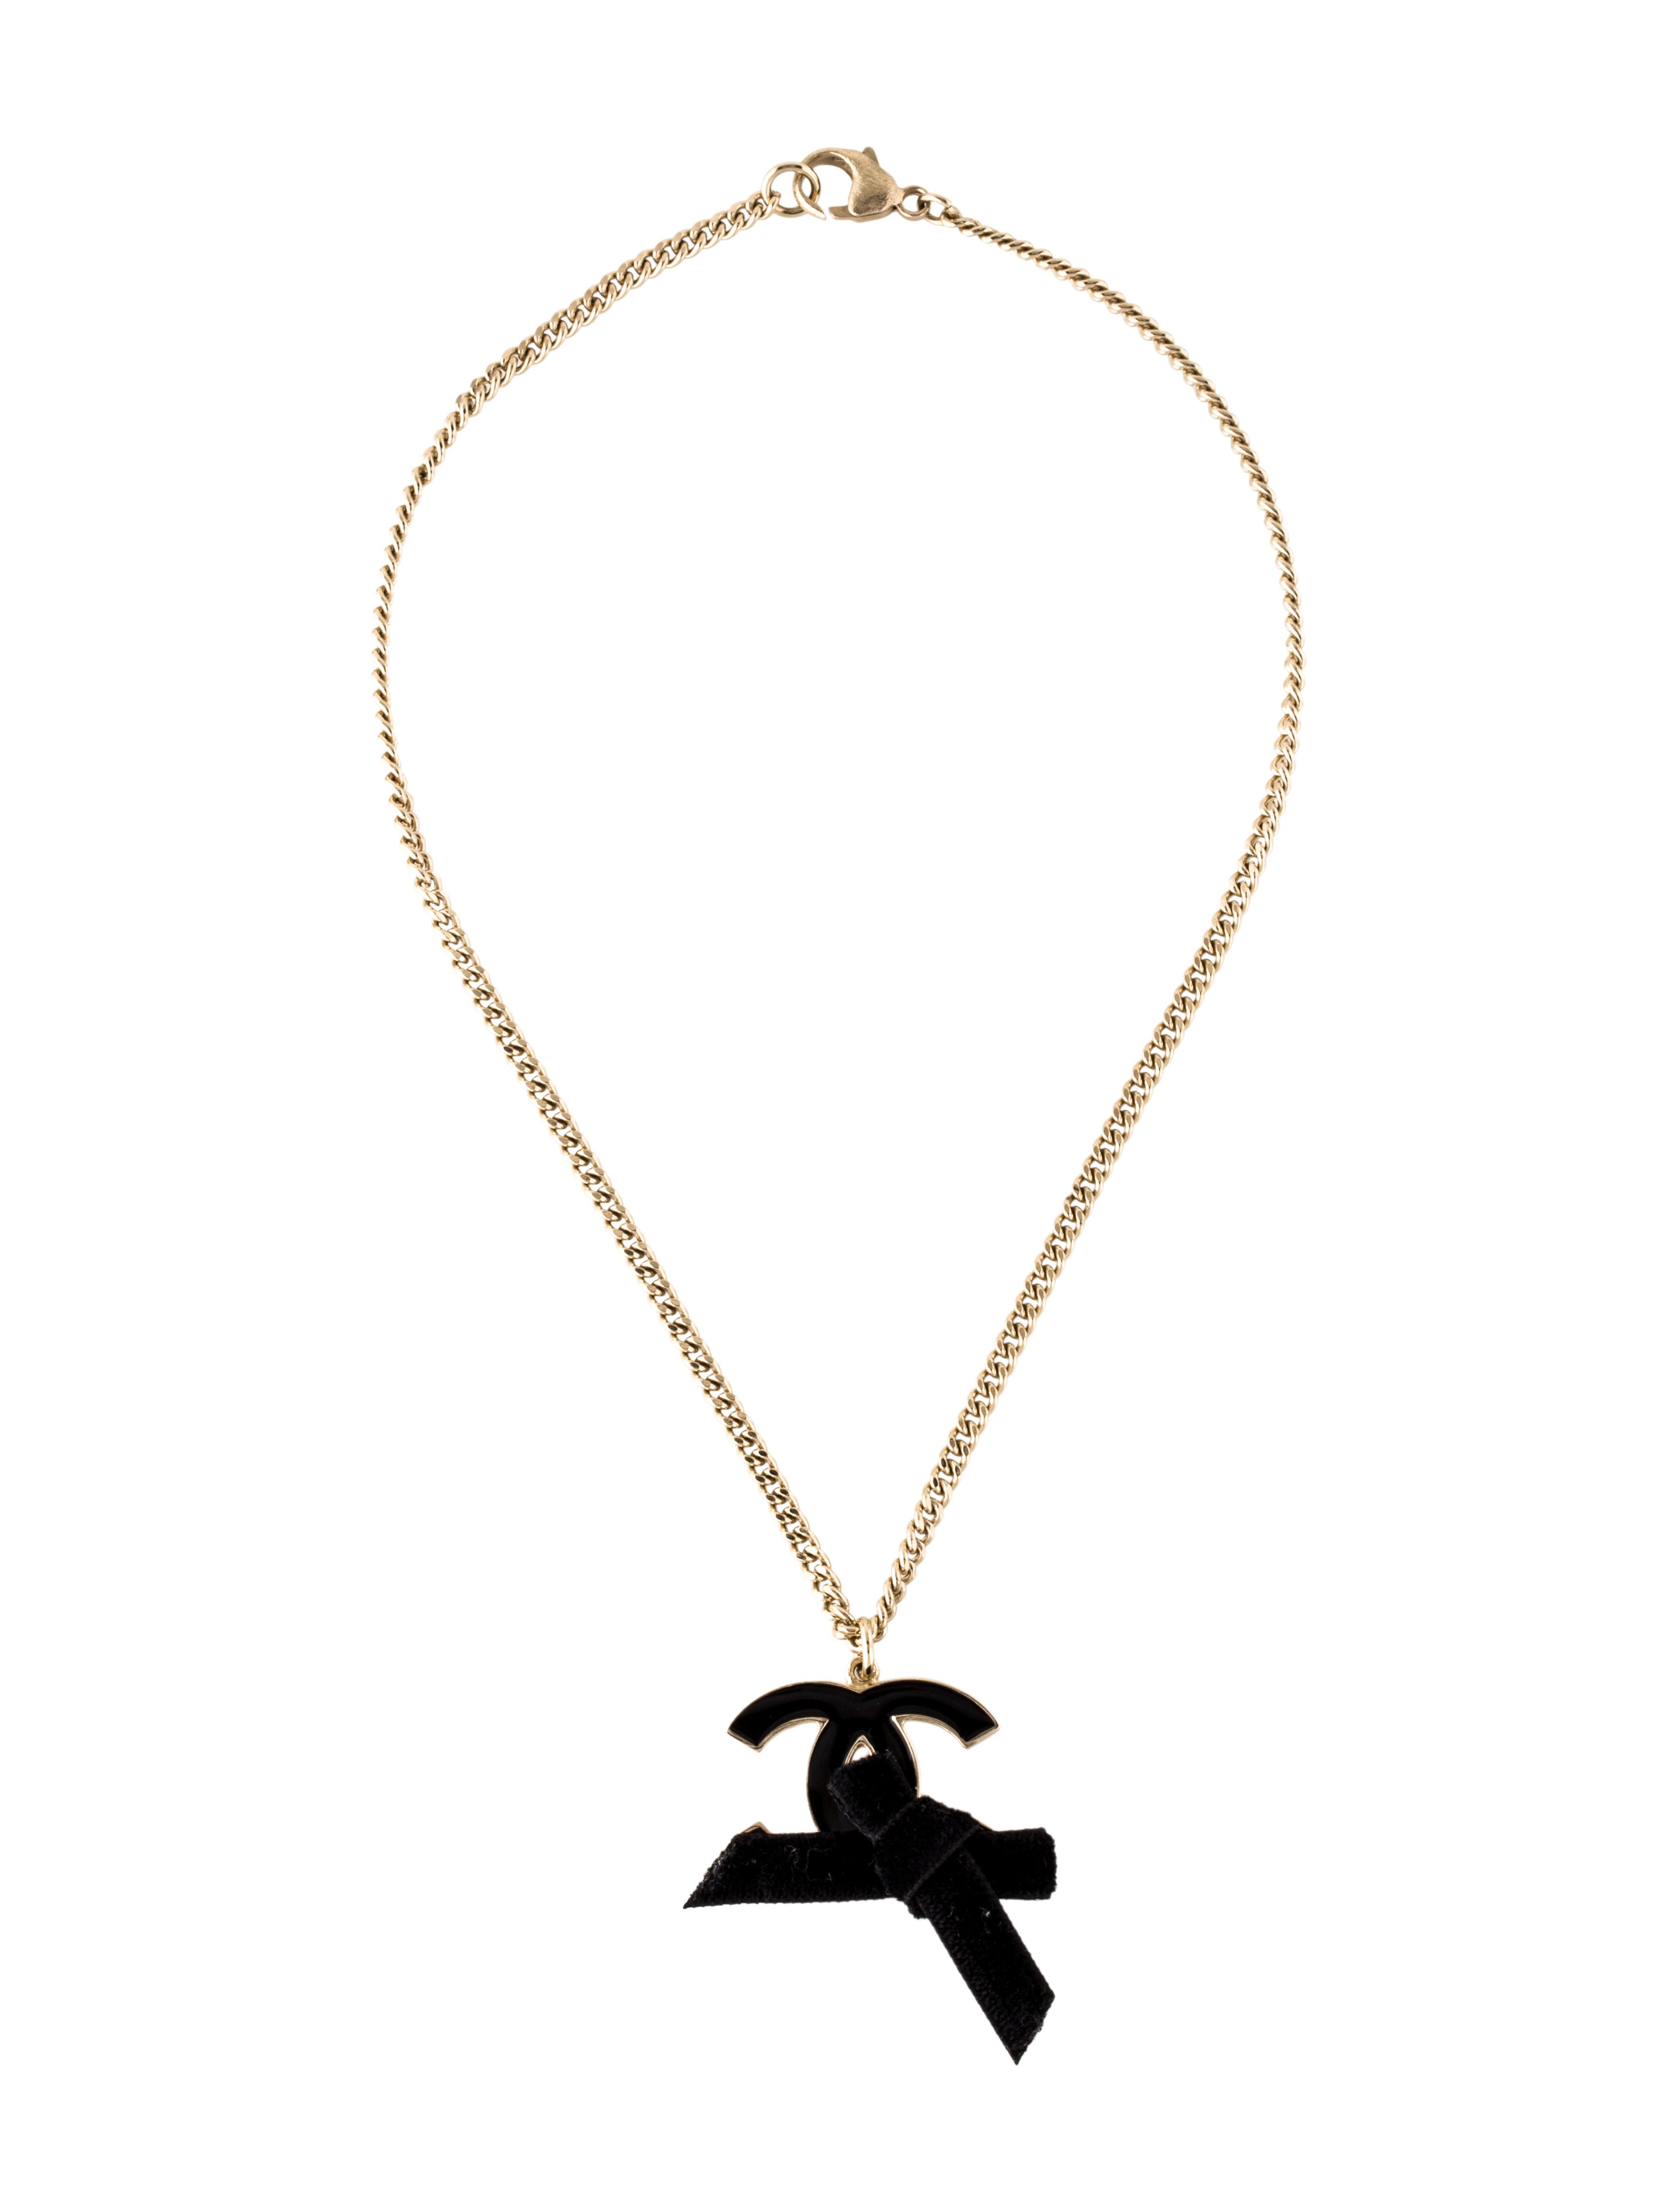 Sears has gorgeous necklaces to complement outfits for any occasion. Find amazing necklaces and pendants that reflect your personal sense of style.